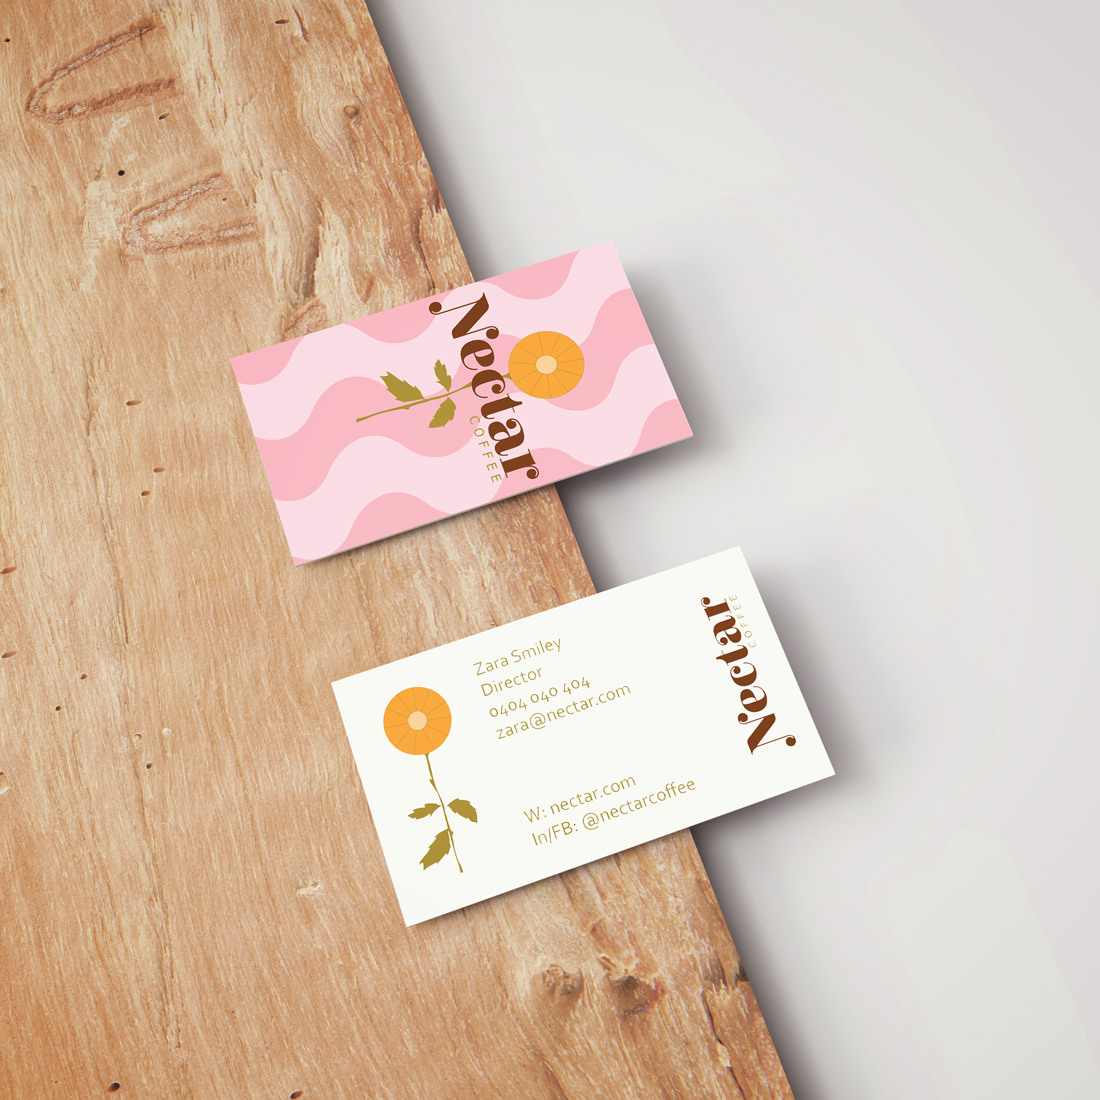 Paige-Digital-branding-Nectar-business-card